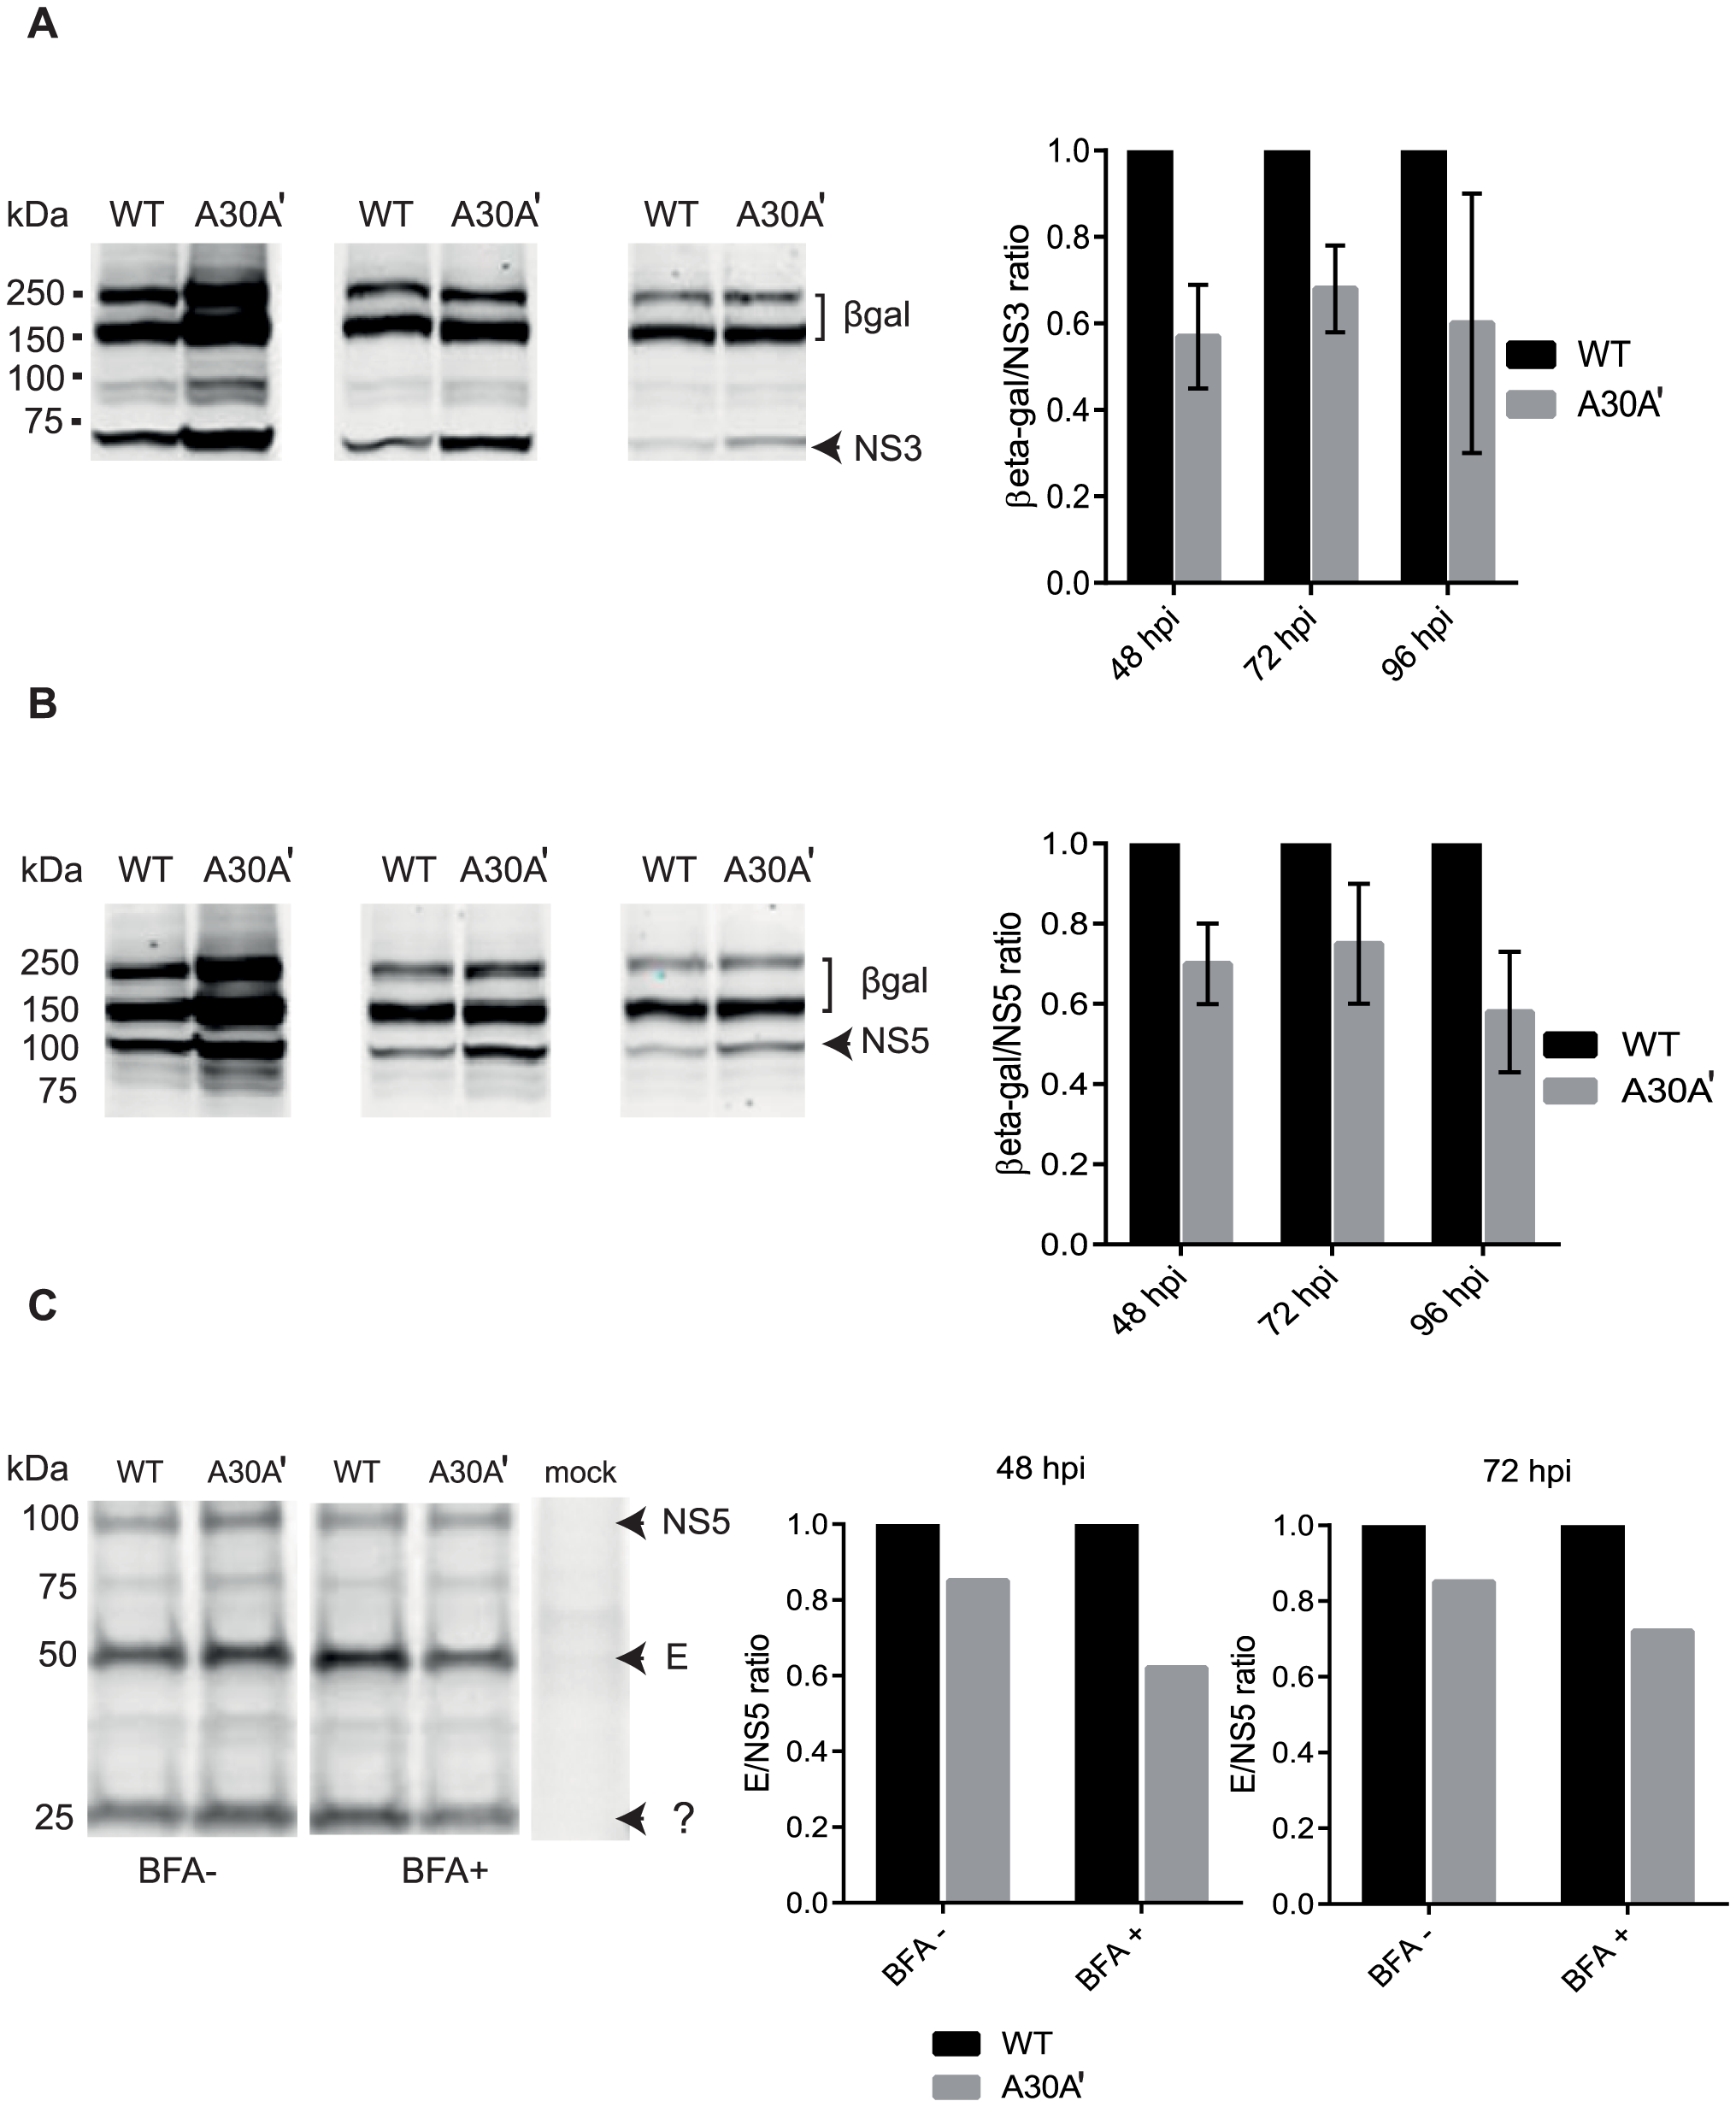 PRF disrupts equimolarity of viral protein synthesis in replicon-transfected and virus-infected cells.